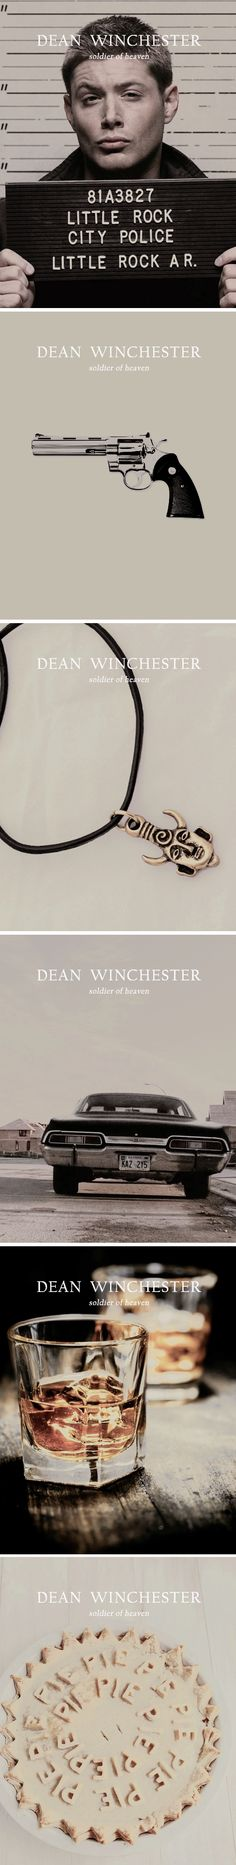 dean Winchester: Keep grinding. No matter how much it hurts, no matter how hard it gets, you got to keep grinding. And that's how we're gonna win. And we're gonna win. #spn